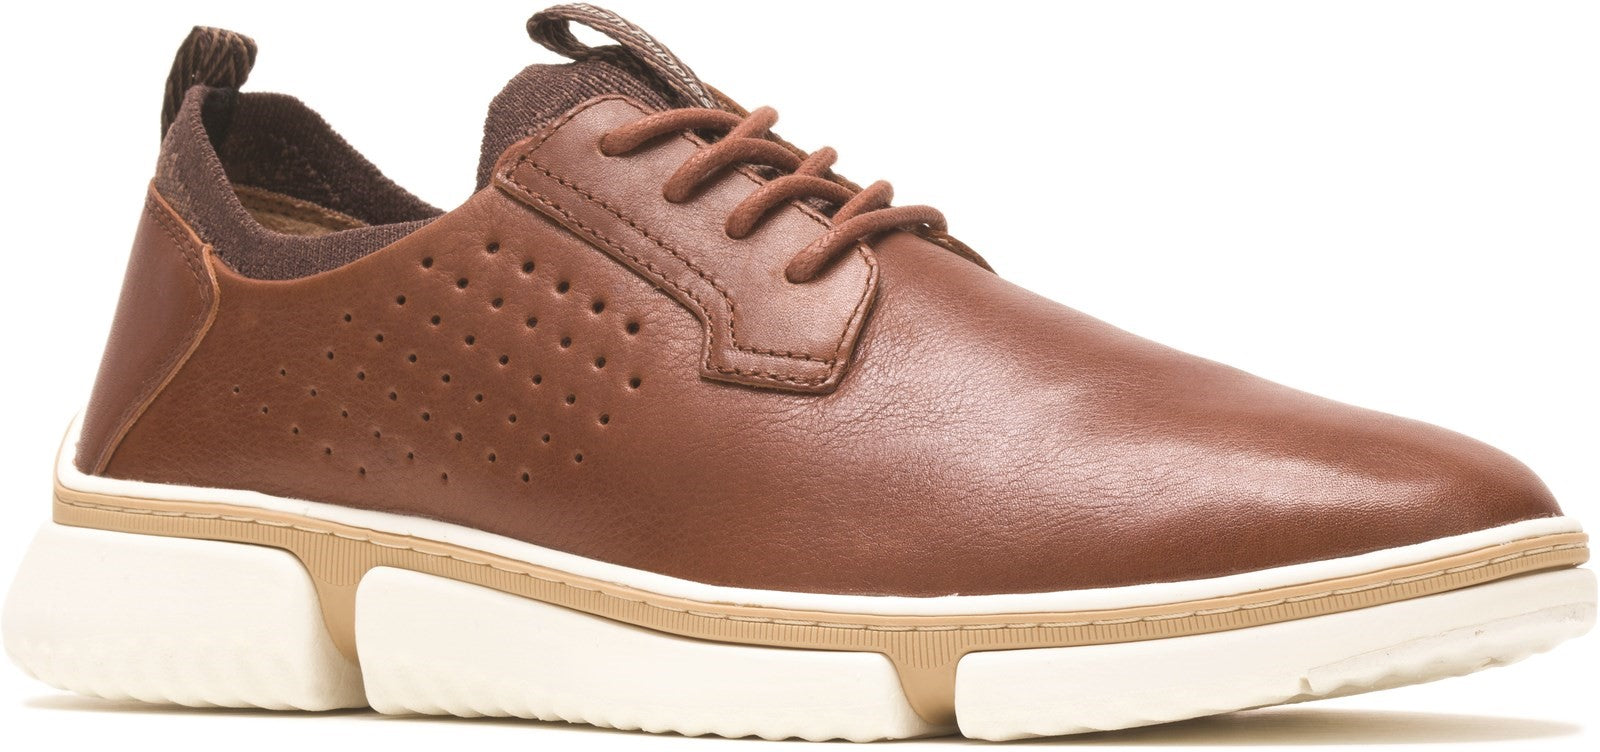 BROWN BENNET OXFORD SHOE